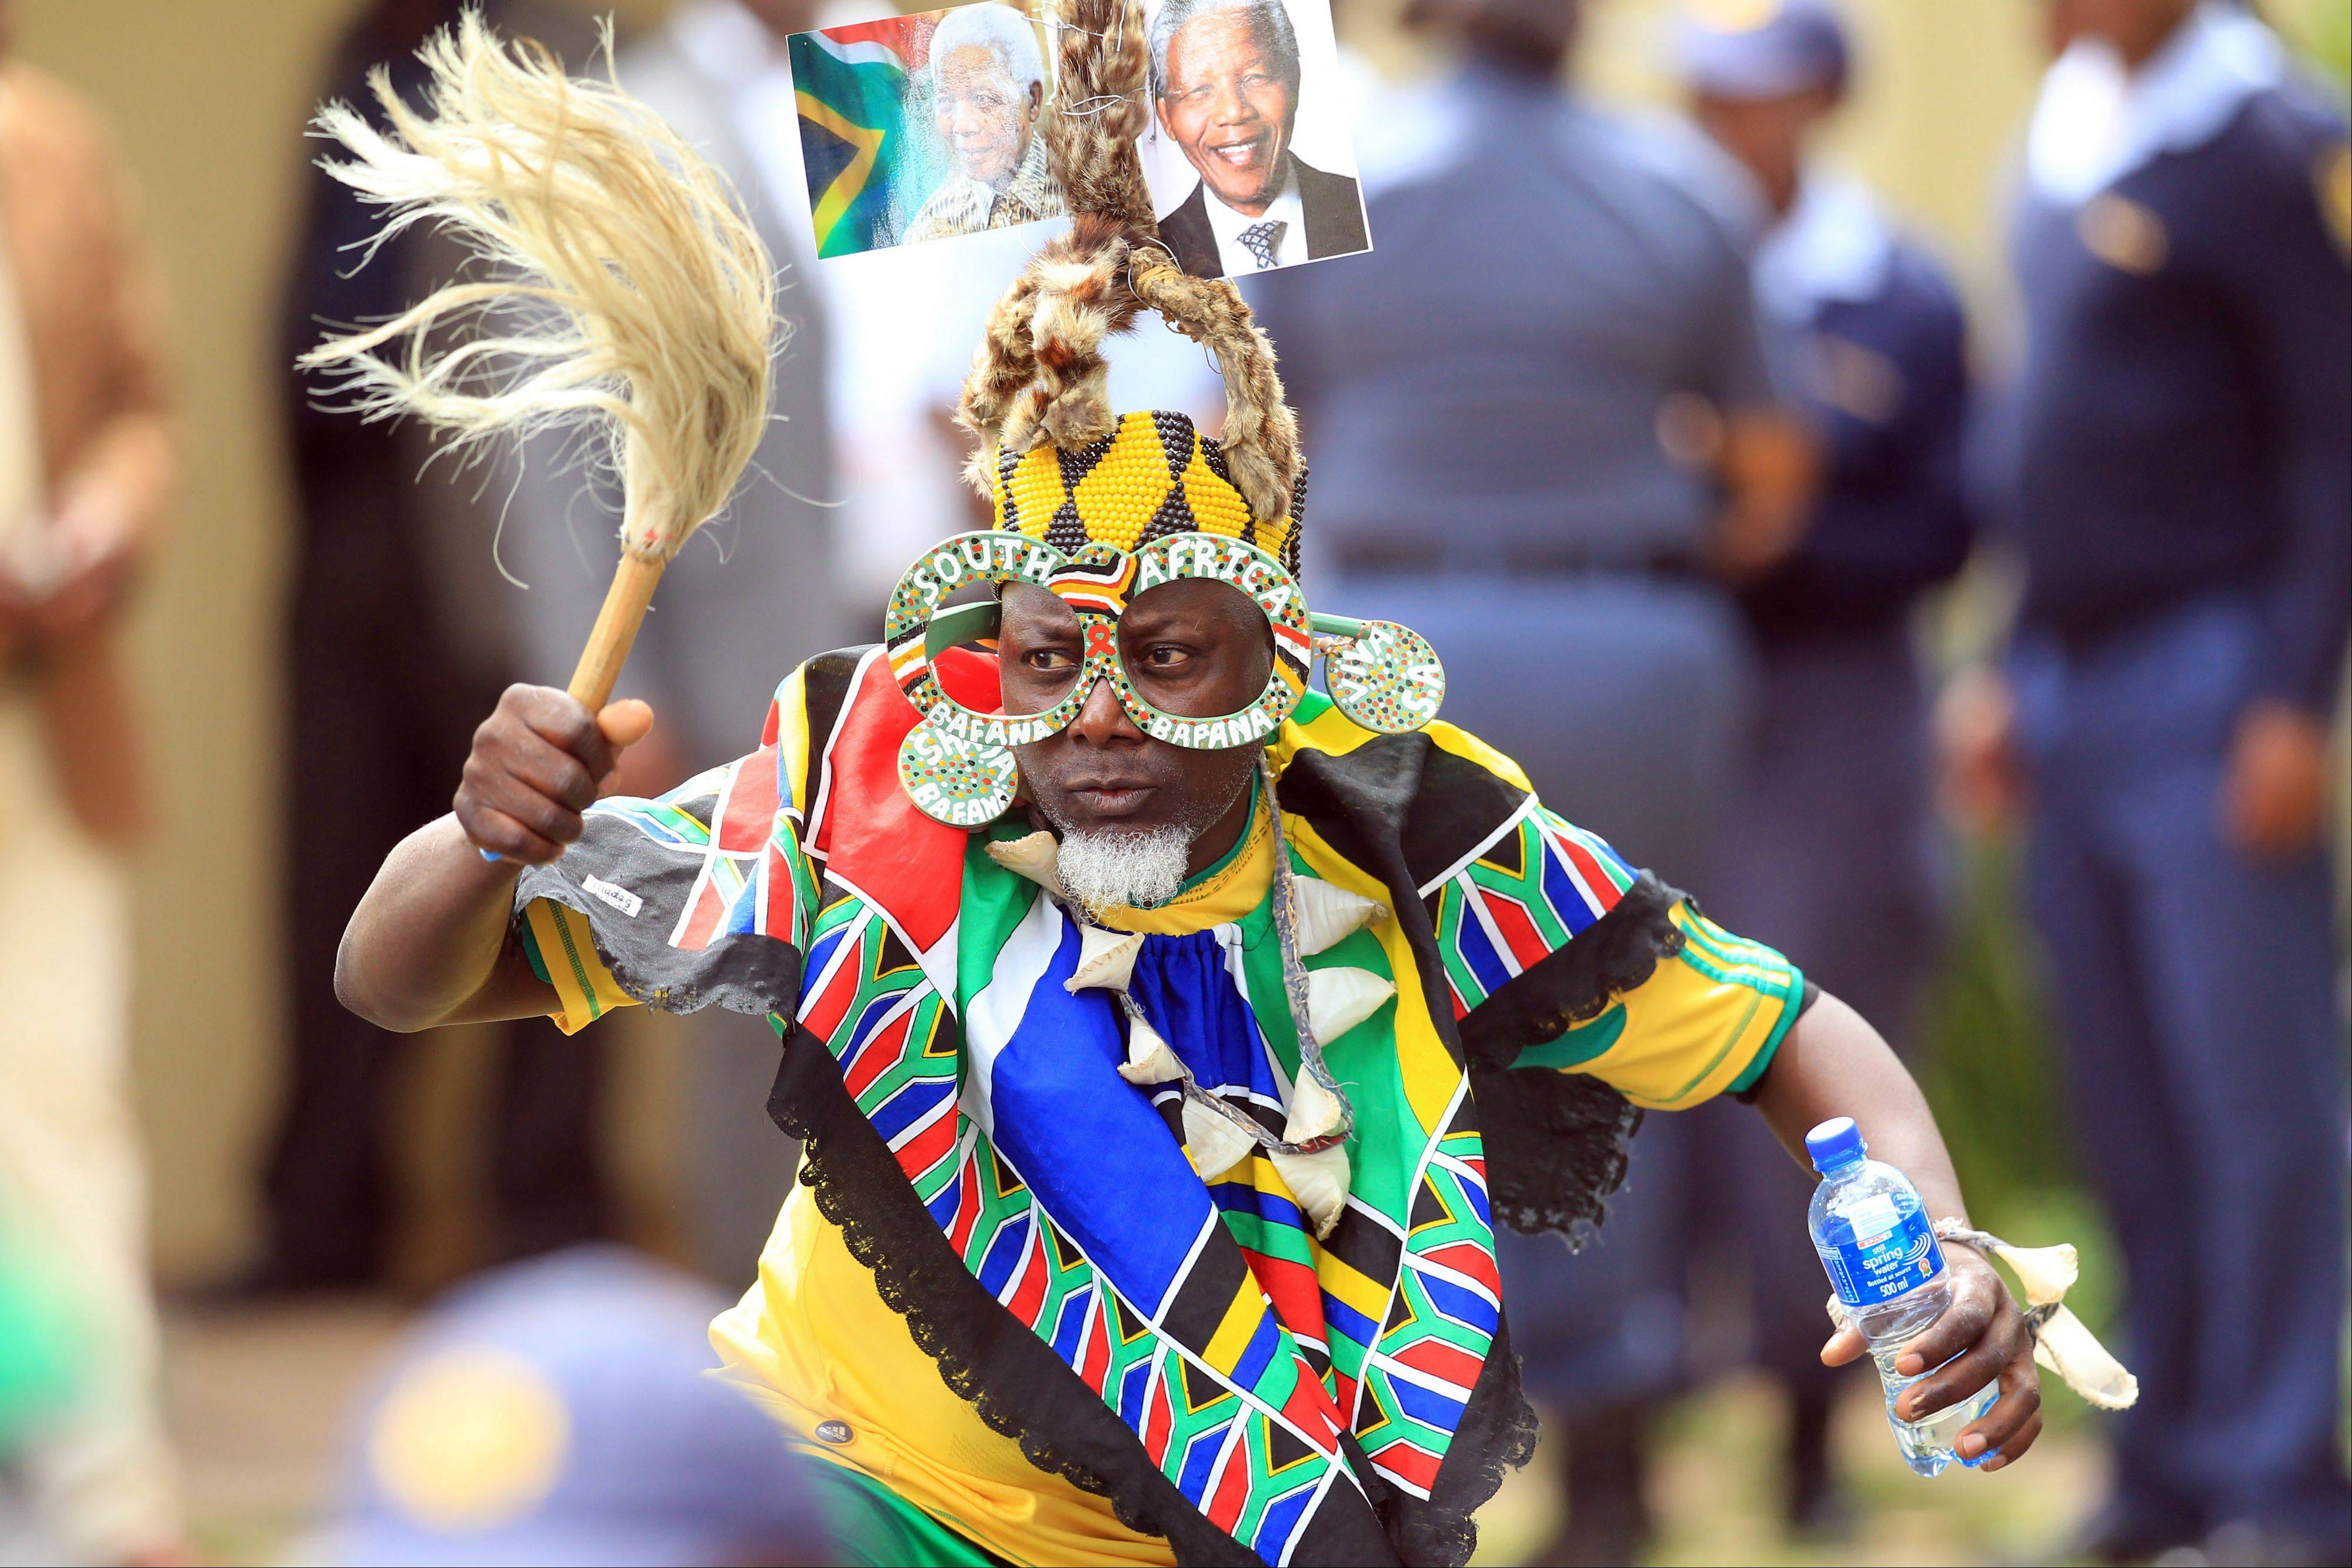 A soccer fan wearing a hat with portraits of former president Nelson Mandela, sings and dances Saturday in Johannesburg, South Africa.